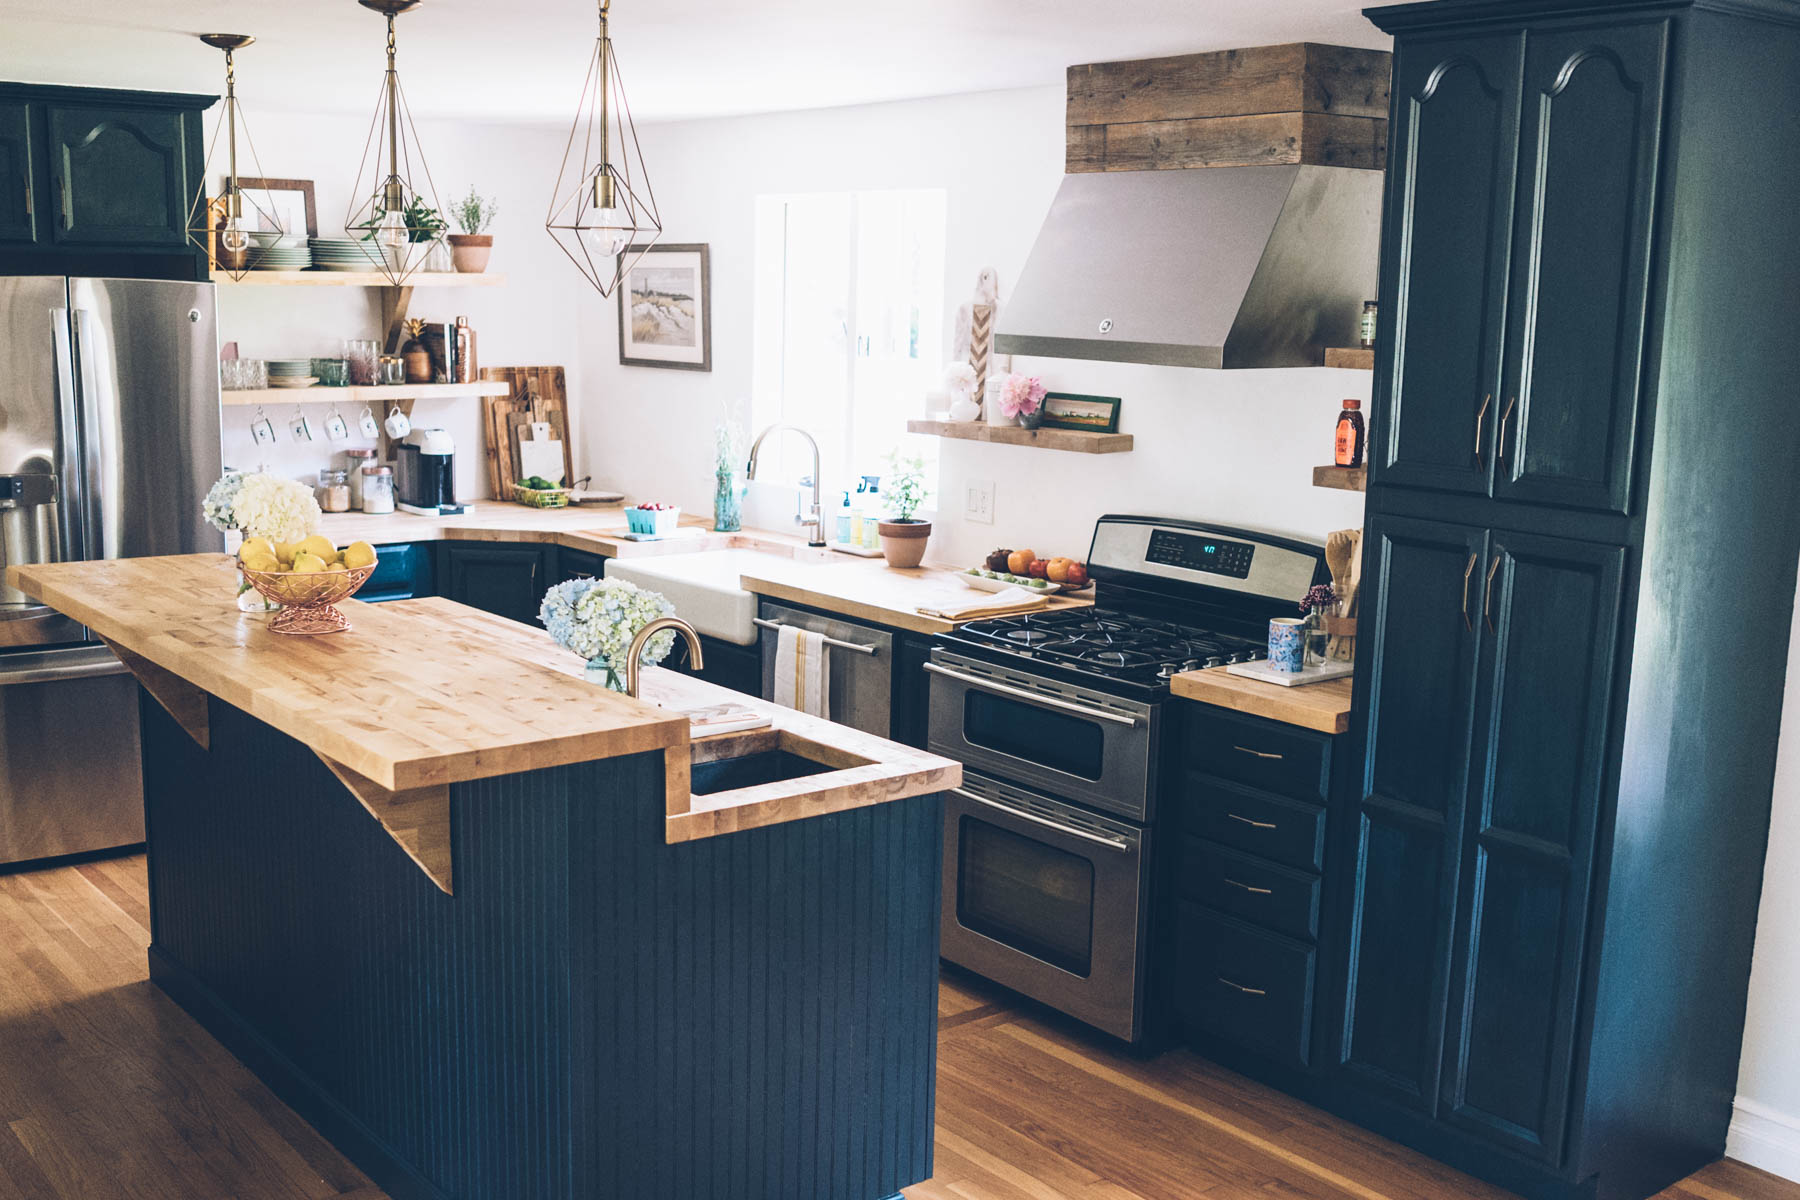 Painted 60s Kitchen Cabinets Our Kitchen Renovation Full Reveal Jess Ann Kirby